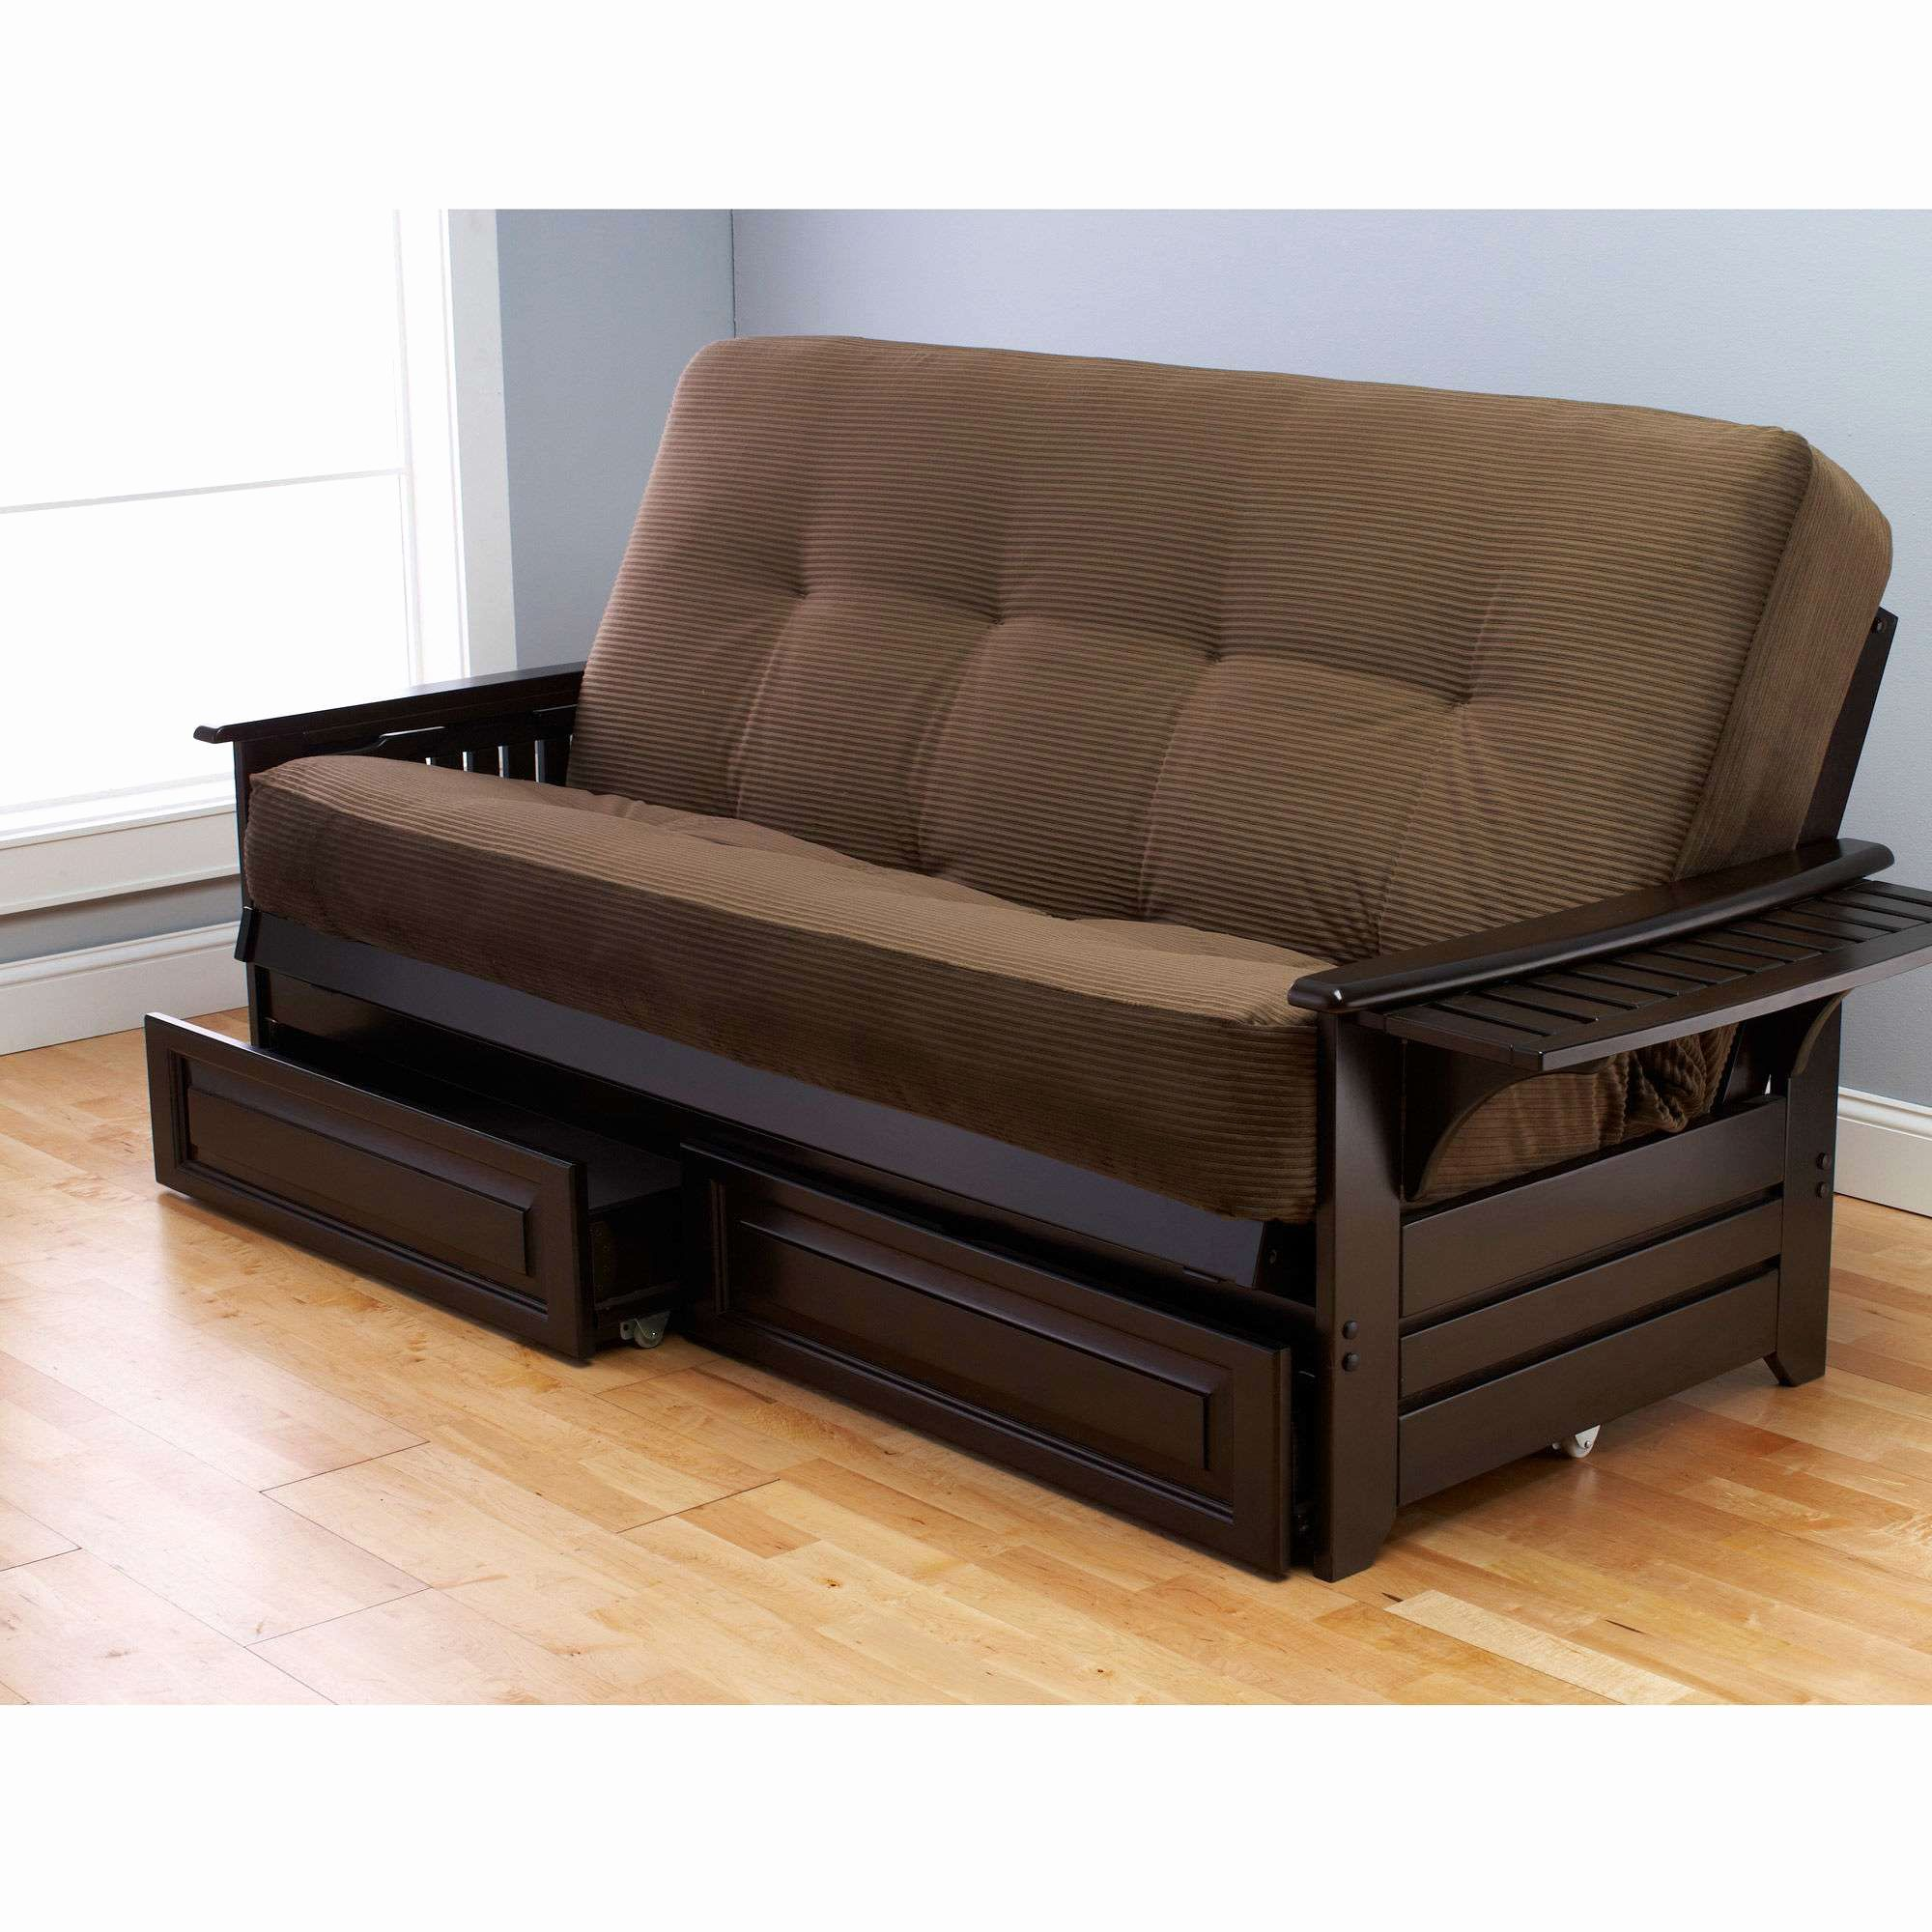 More Comfortable Futon Or Sleeper Sofa Best Futons Chaise